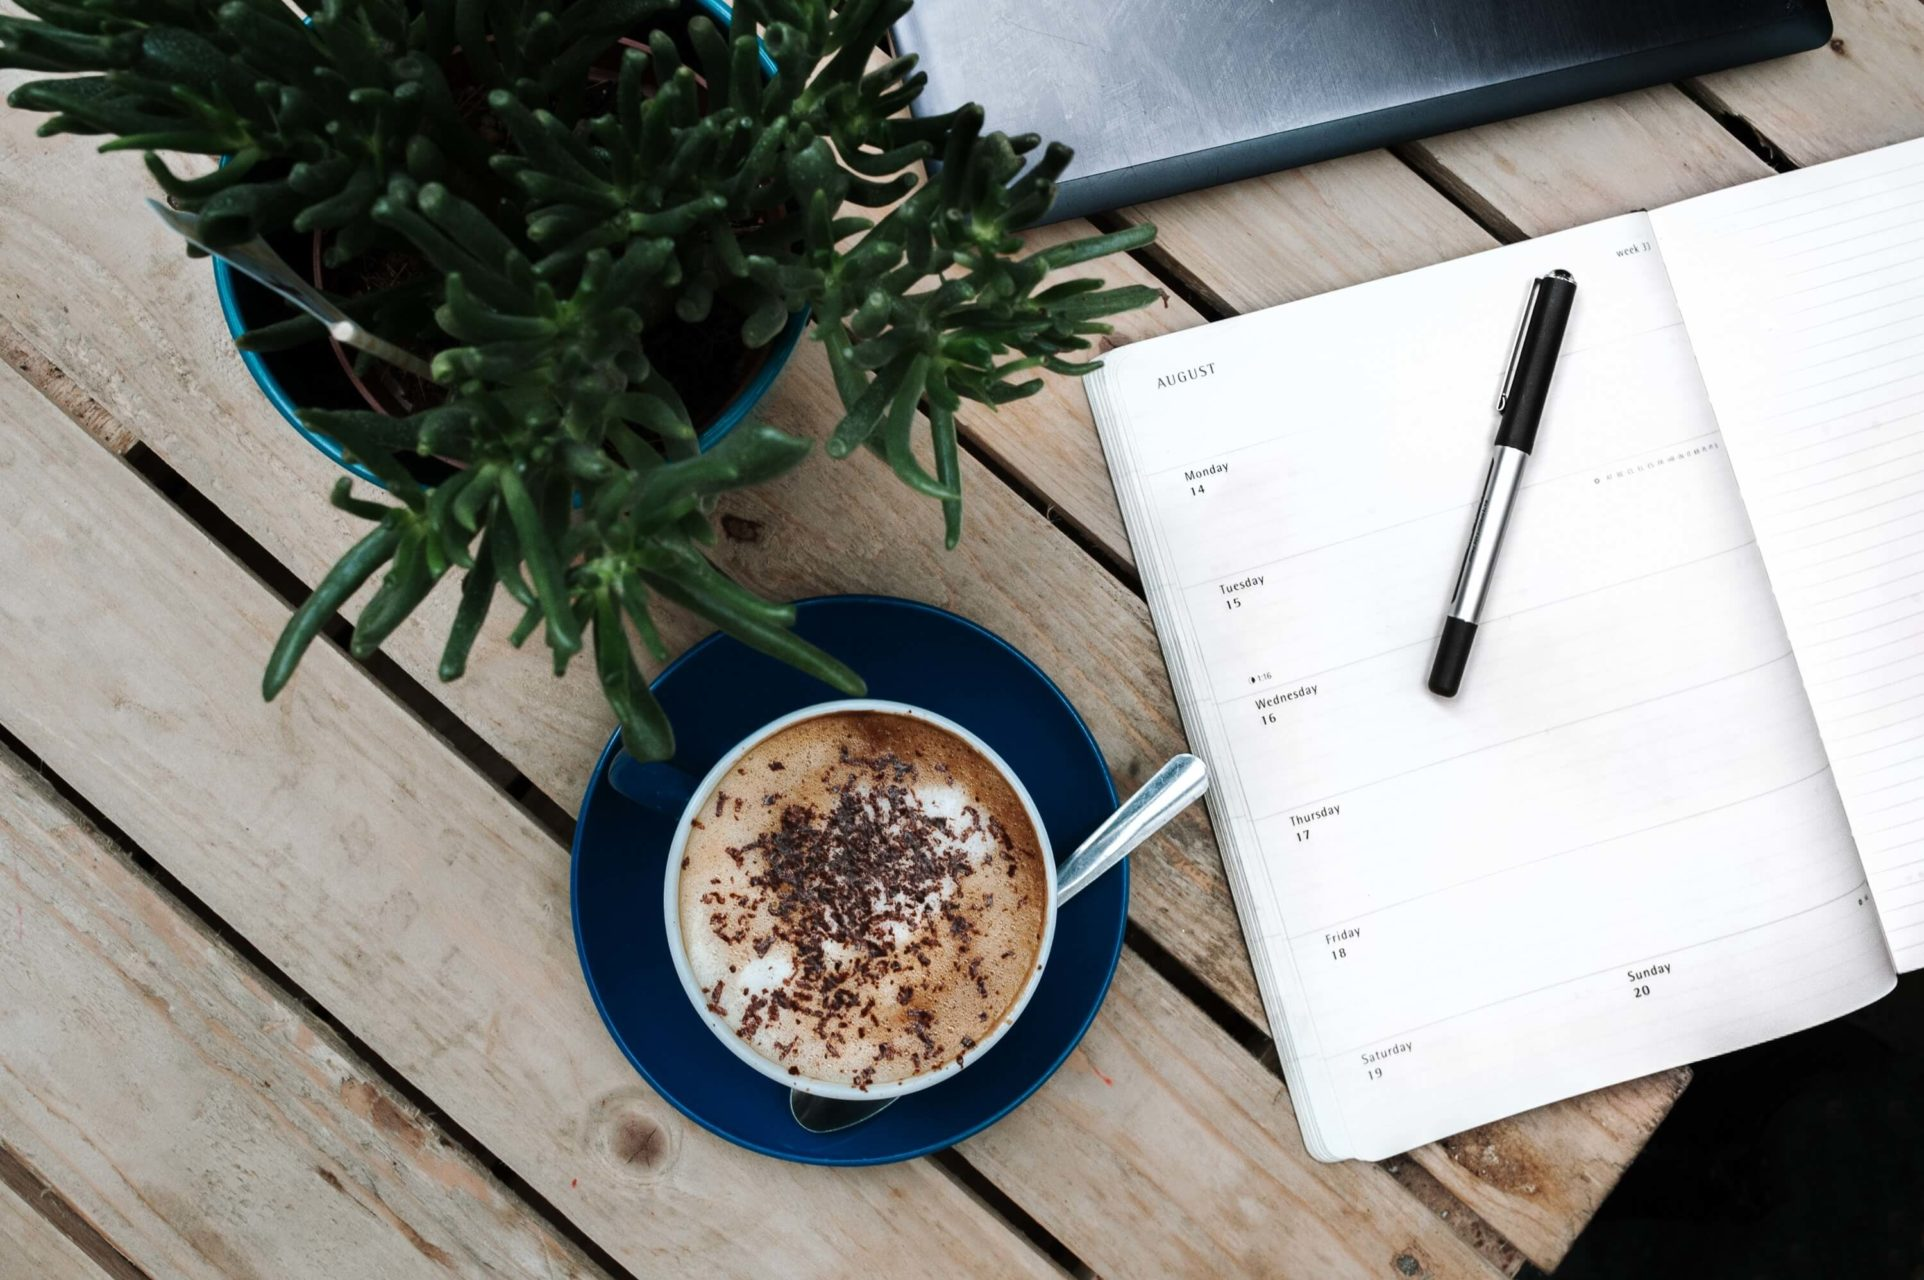 Mug of hot chocolate next to open weekly planner with a plant near it